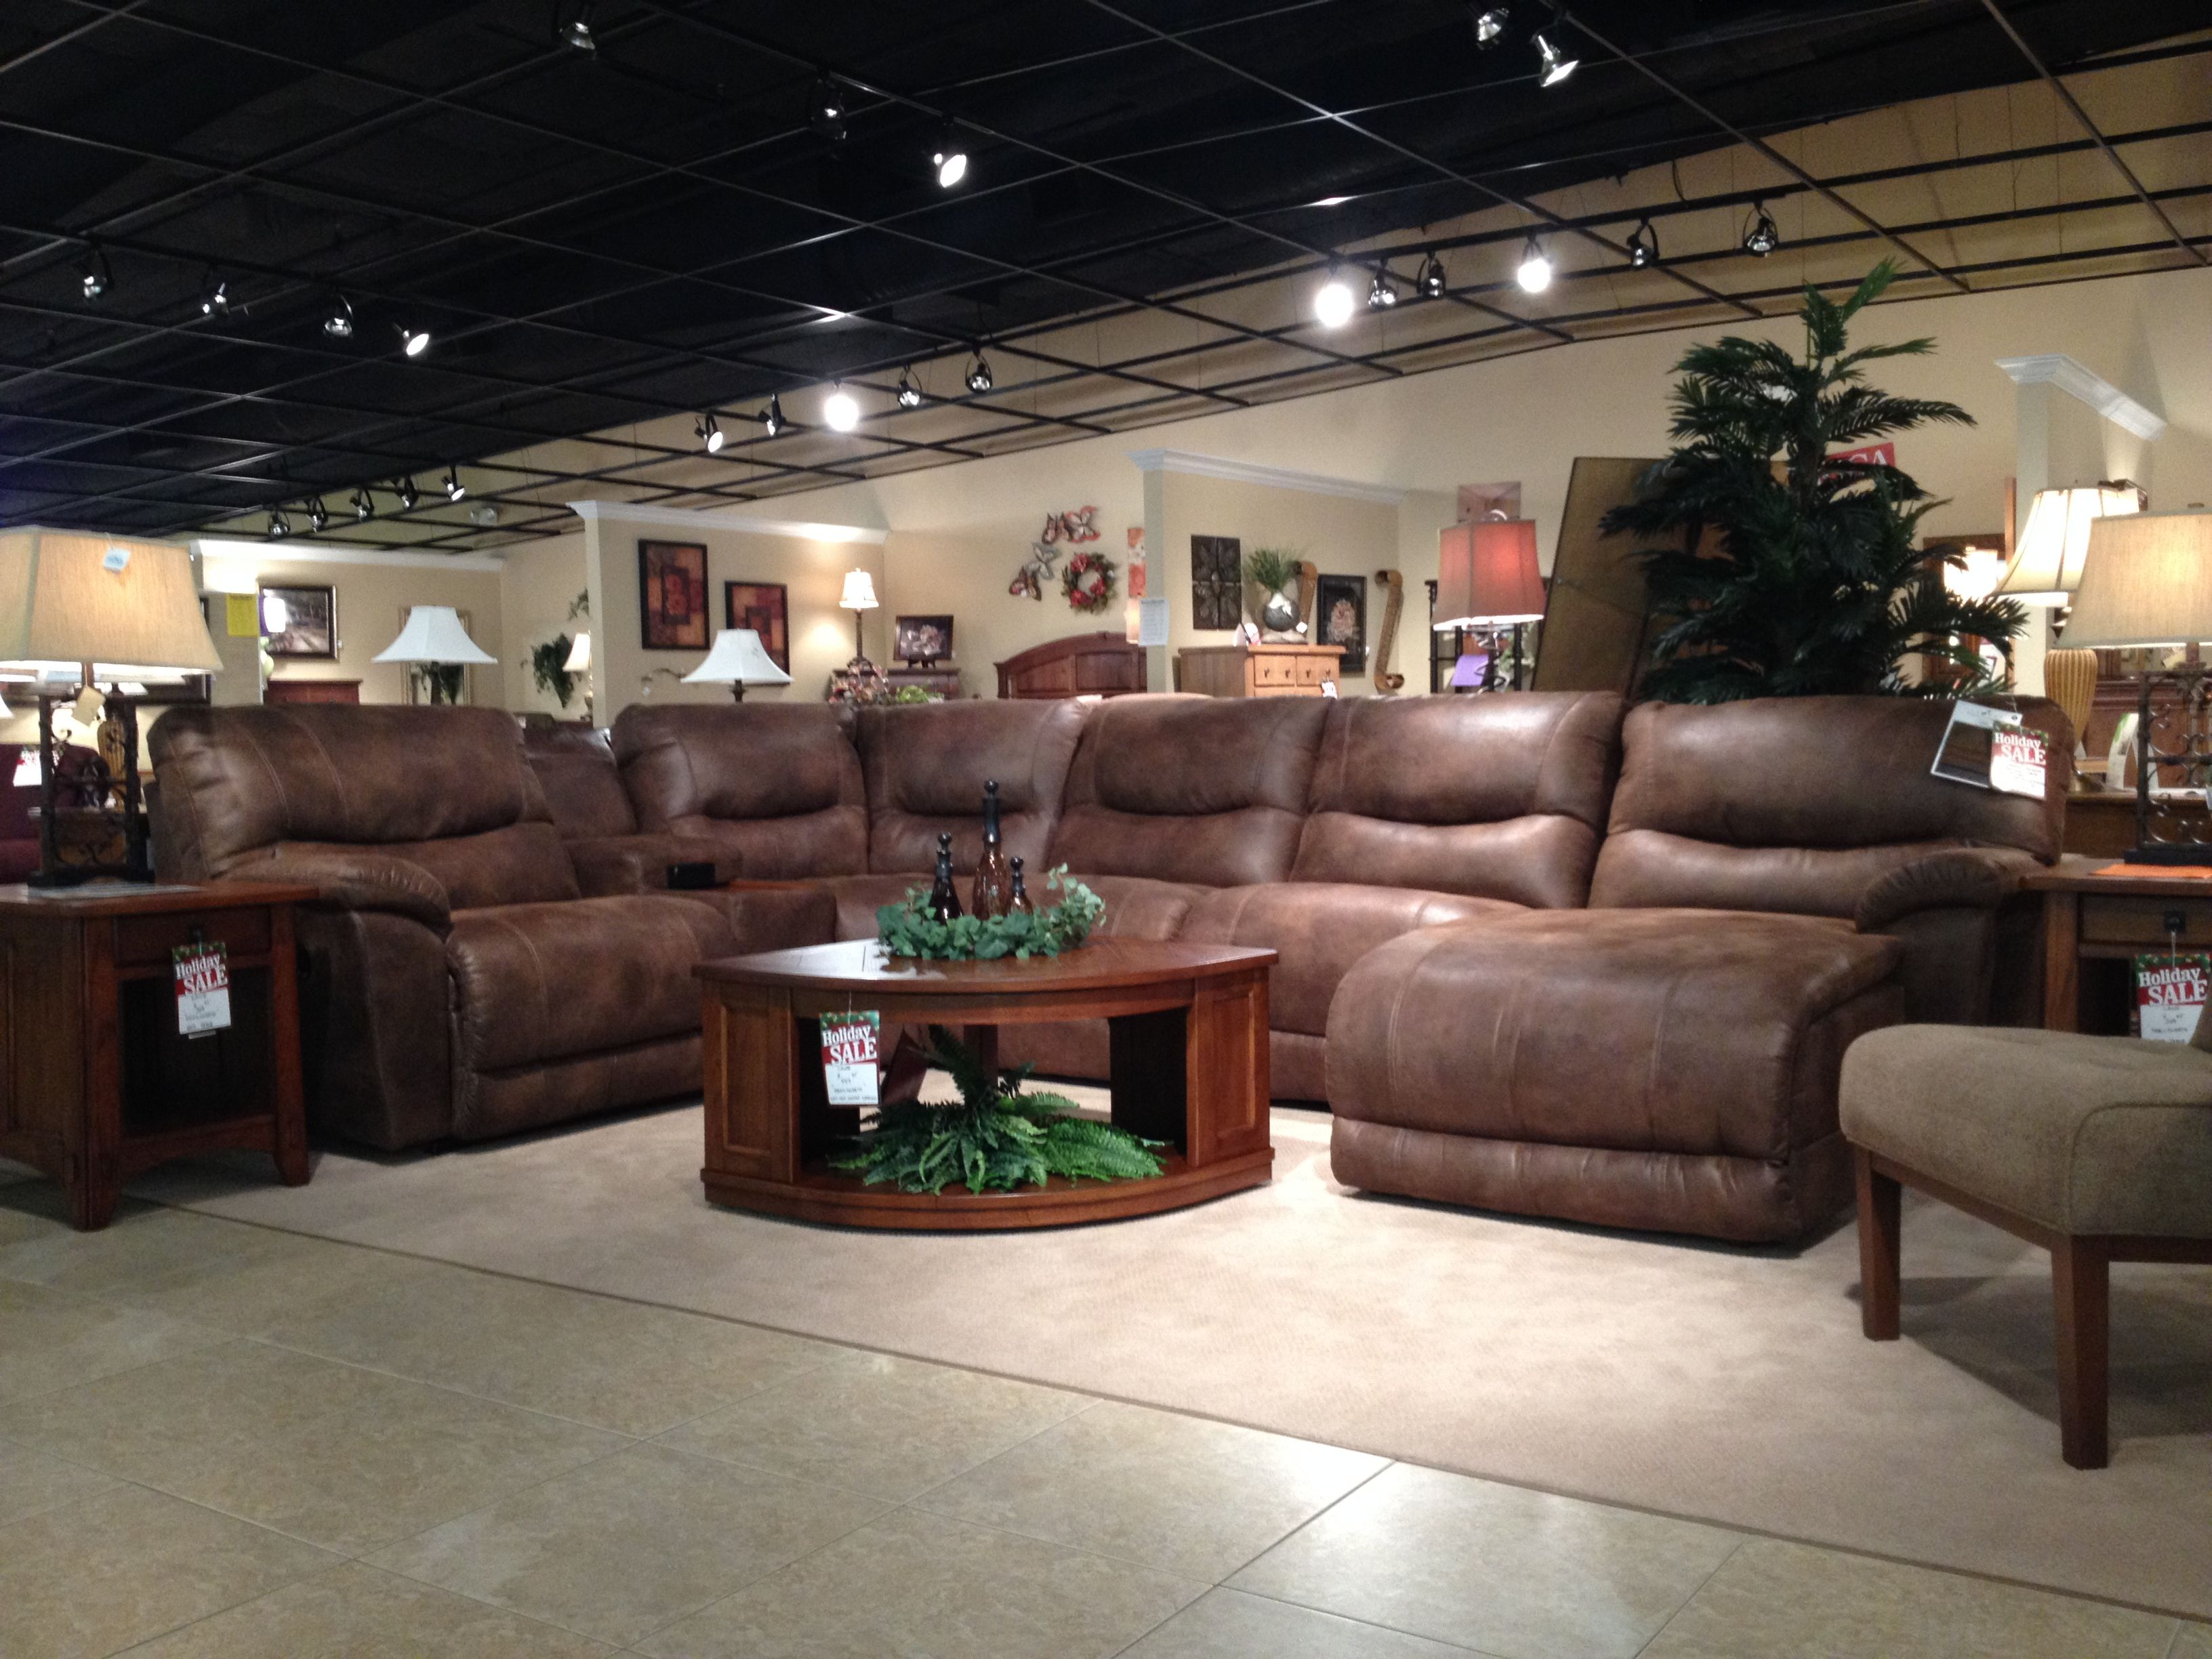 Homefurniturein La Z Boy Dawson Sectional Now Available In Store Sectional Home Home Furniture